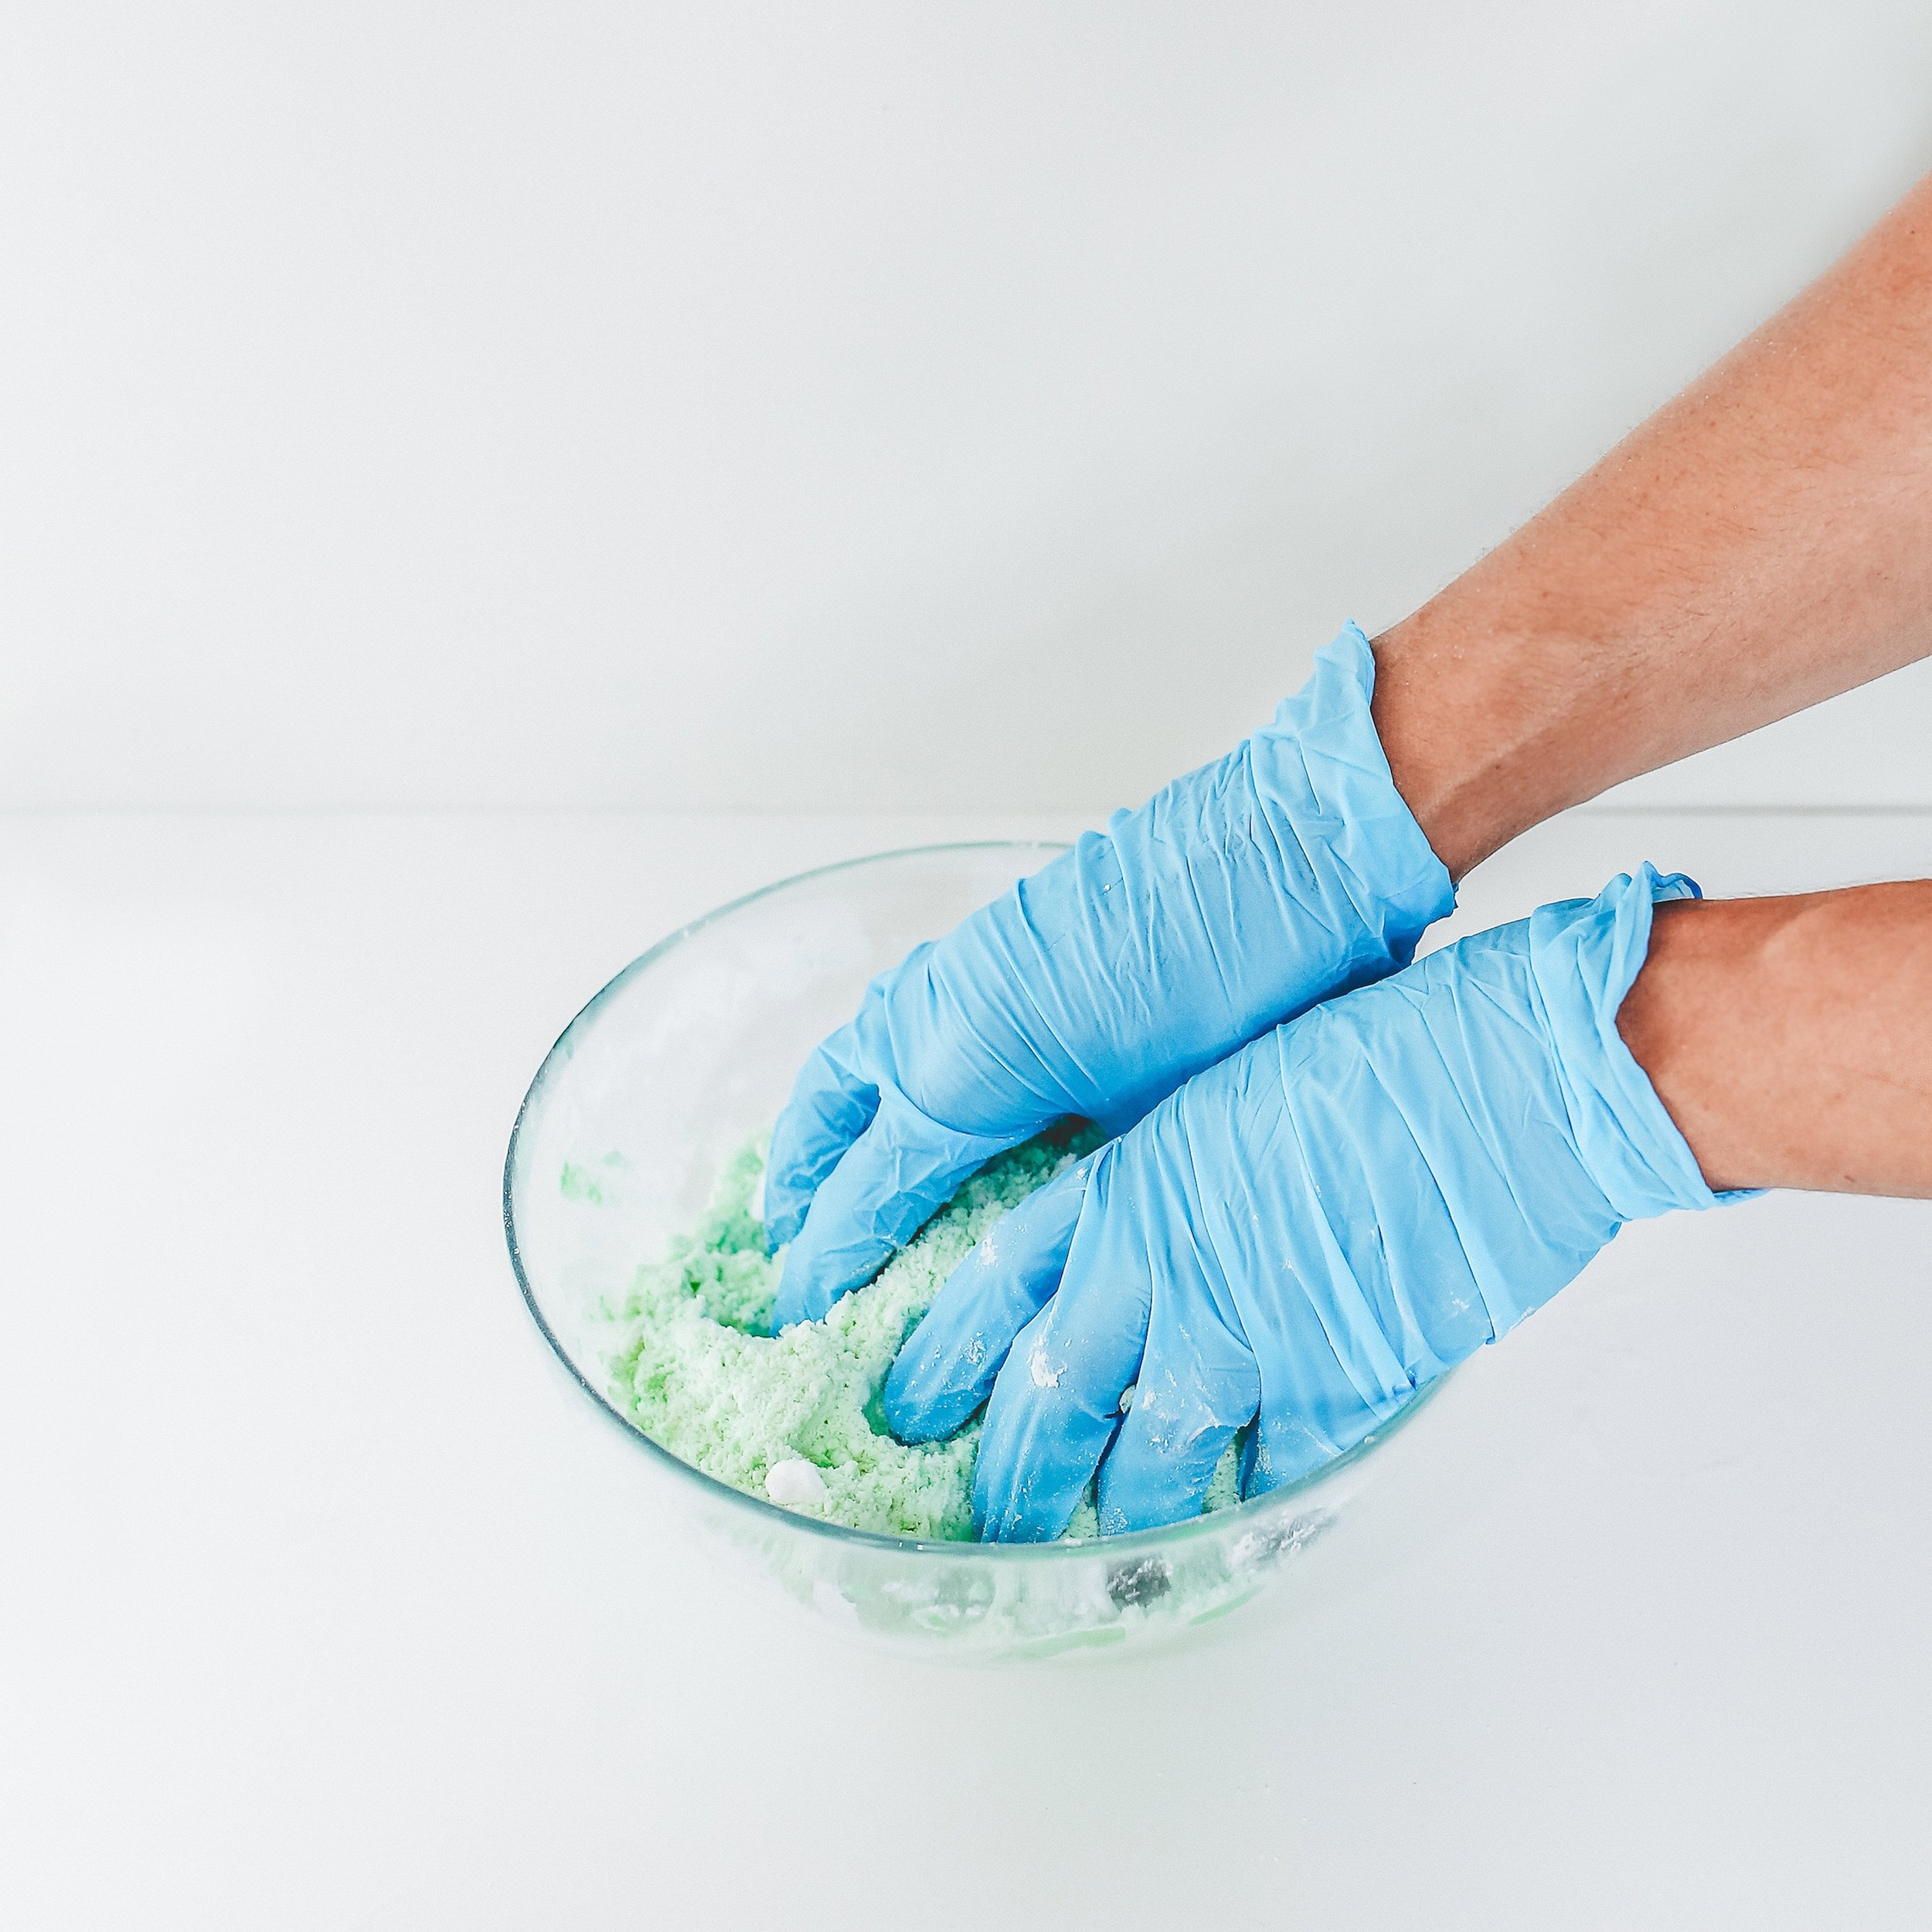 Use hands to distribute moisture